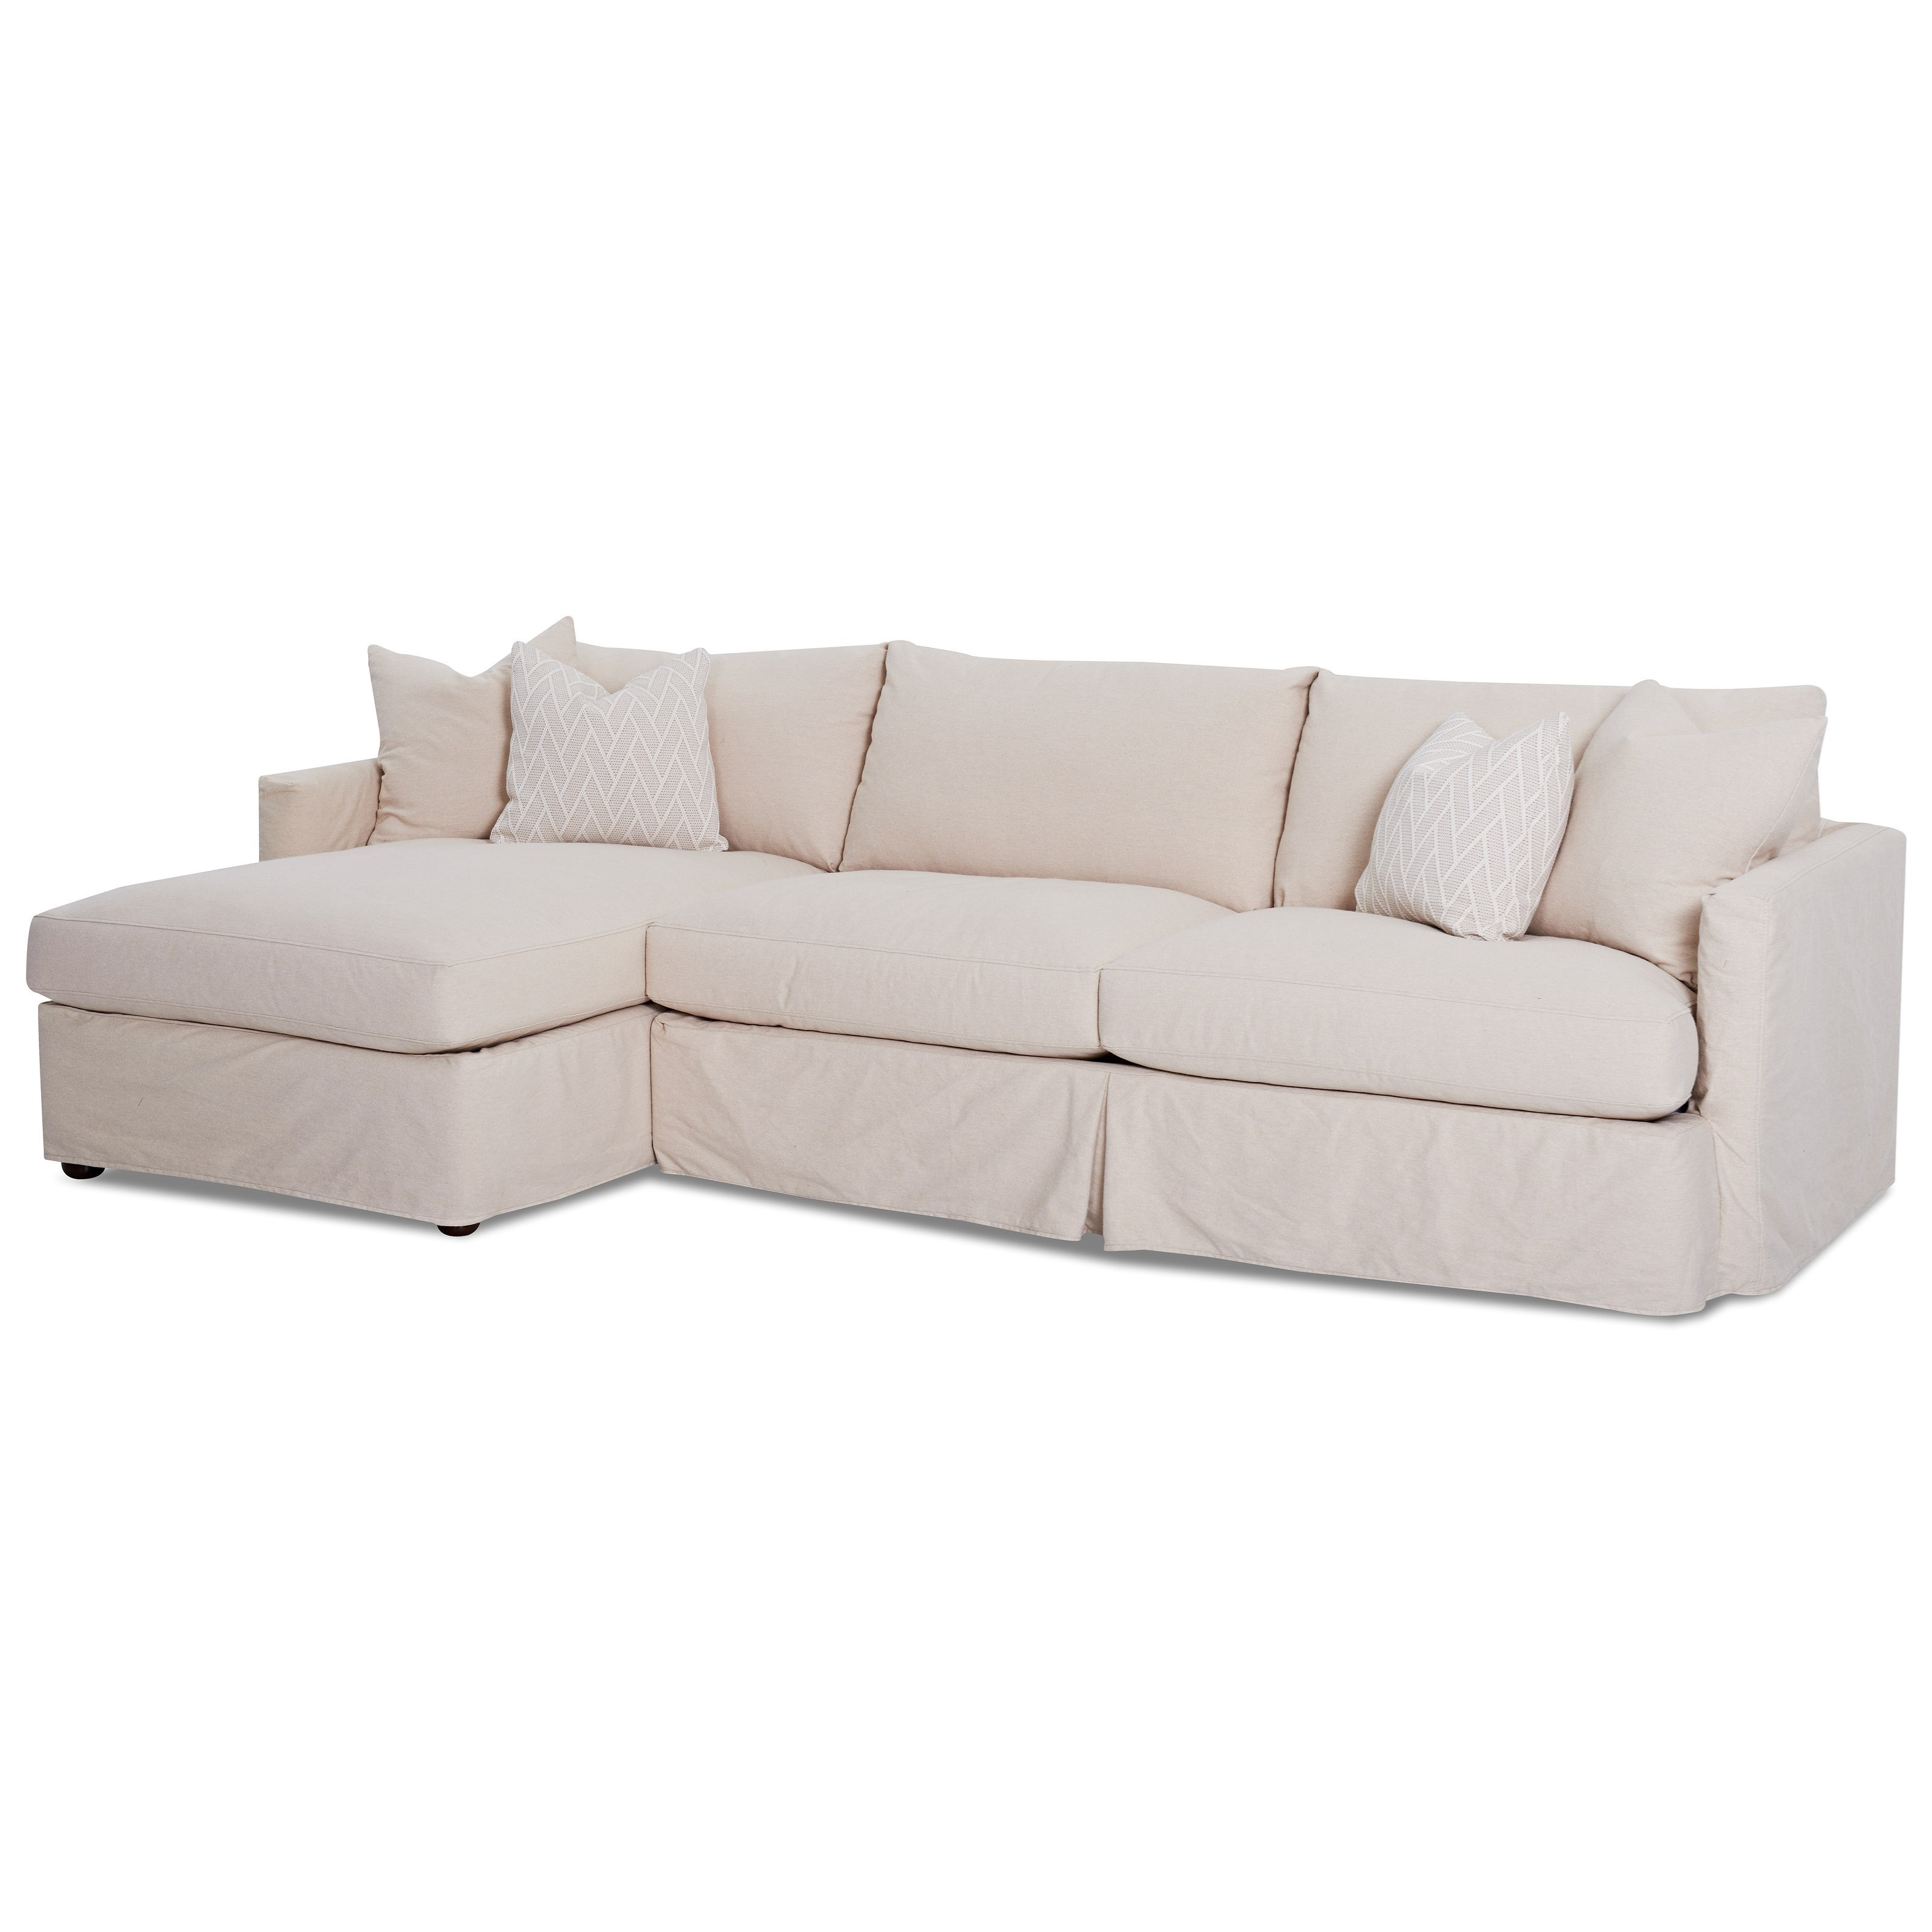 Merveilleux Klaussner Leisure 2 Pc Sectional Sofa With Slipcover And LAF Chaise